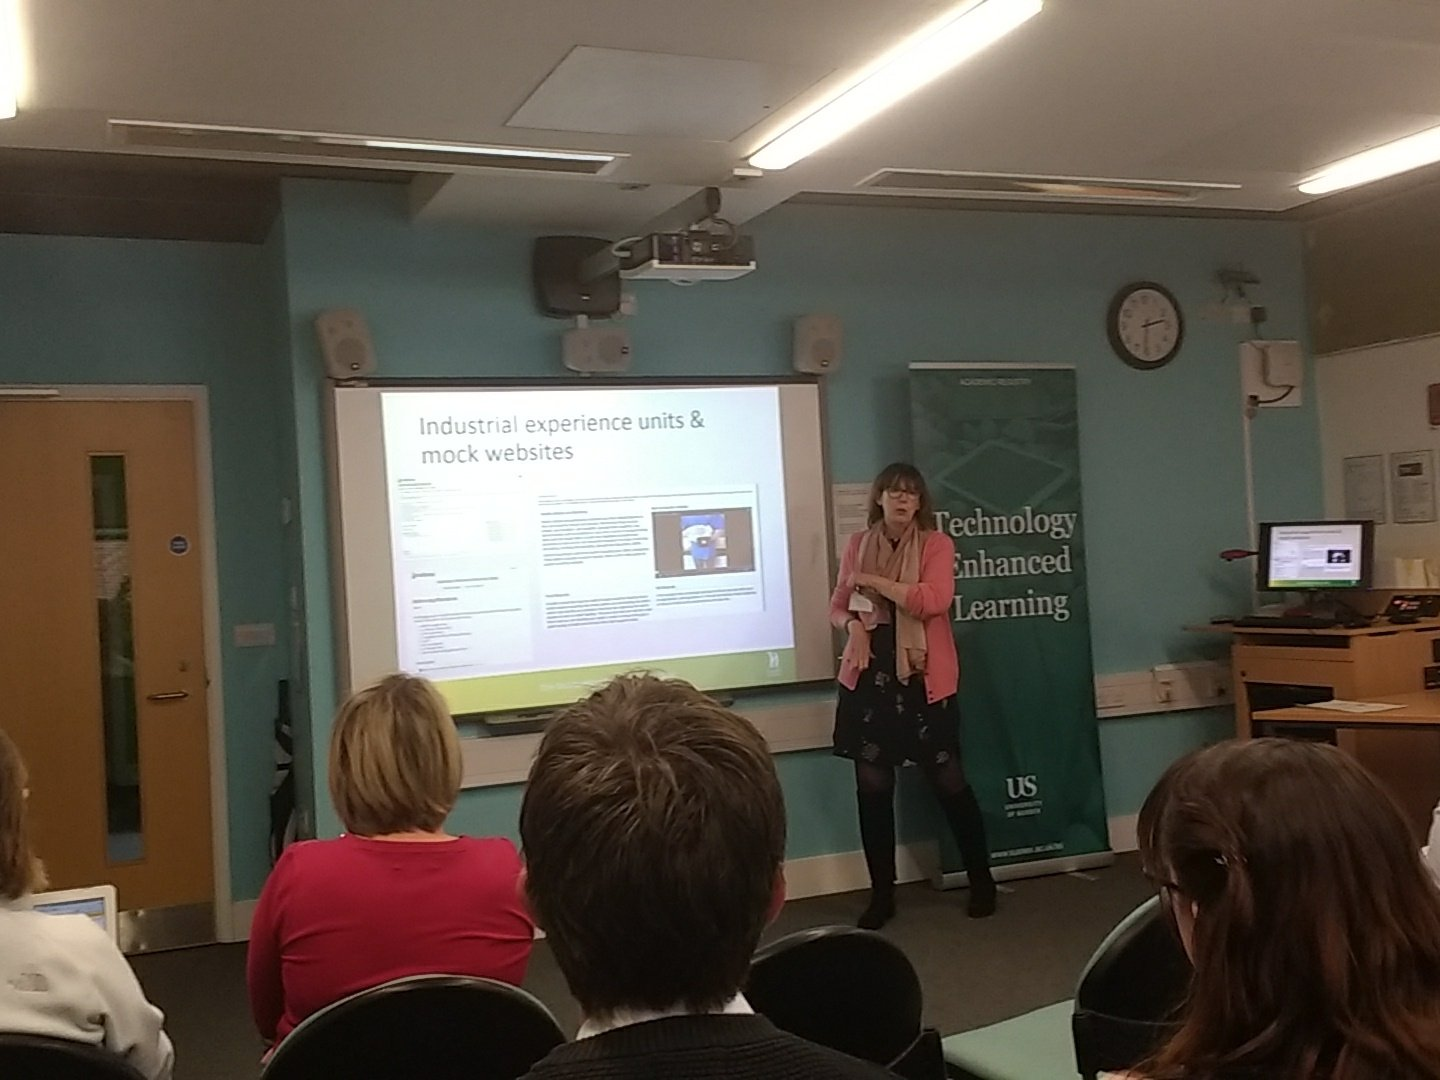 Louise Carr explaining how Mahara is used at @Hadlow_College - allows students to showcase their skills to potential employers #MUGSE https://t.co/3ID1QOieSW